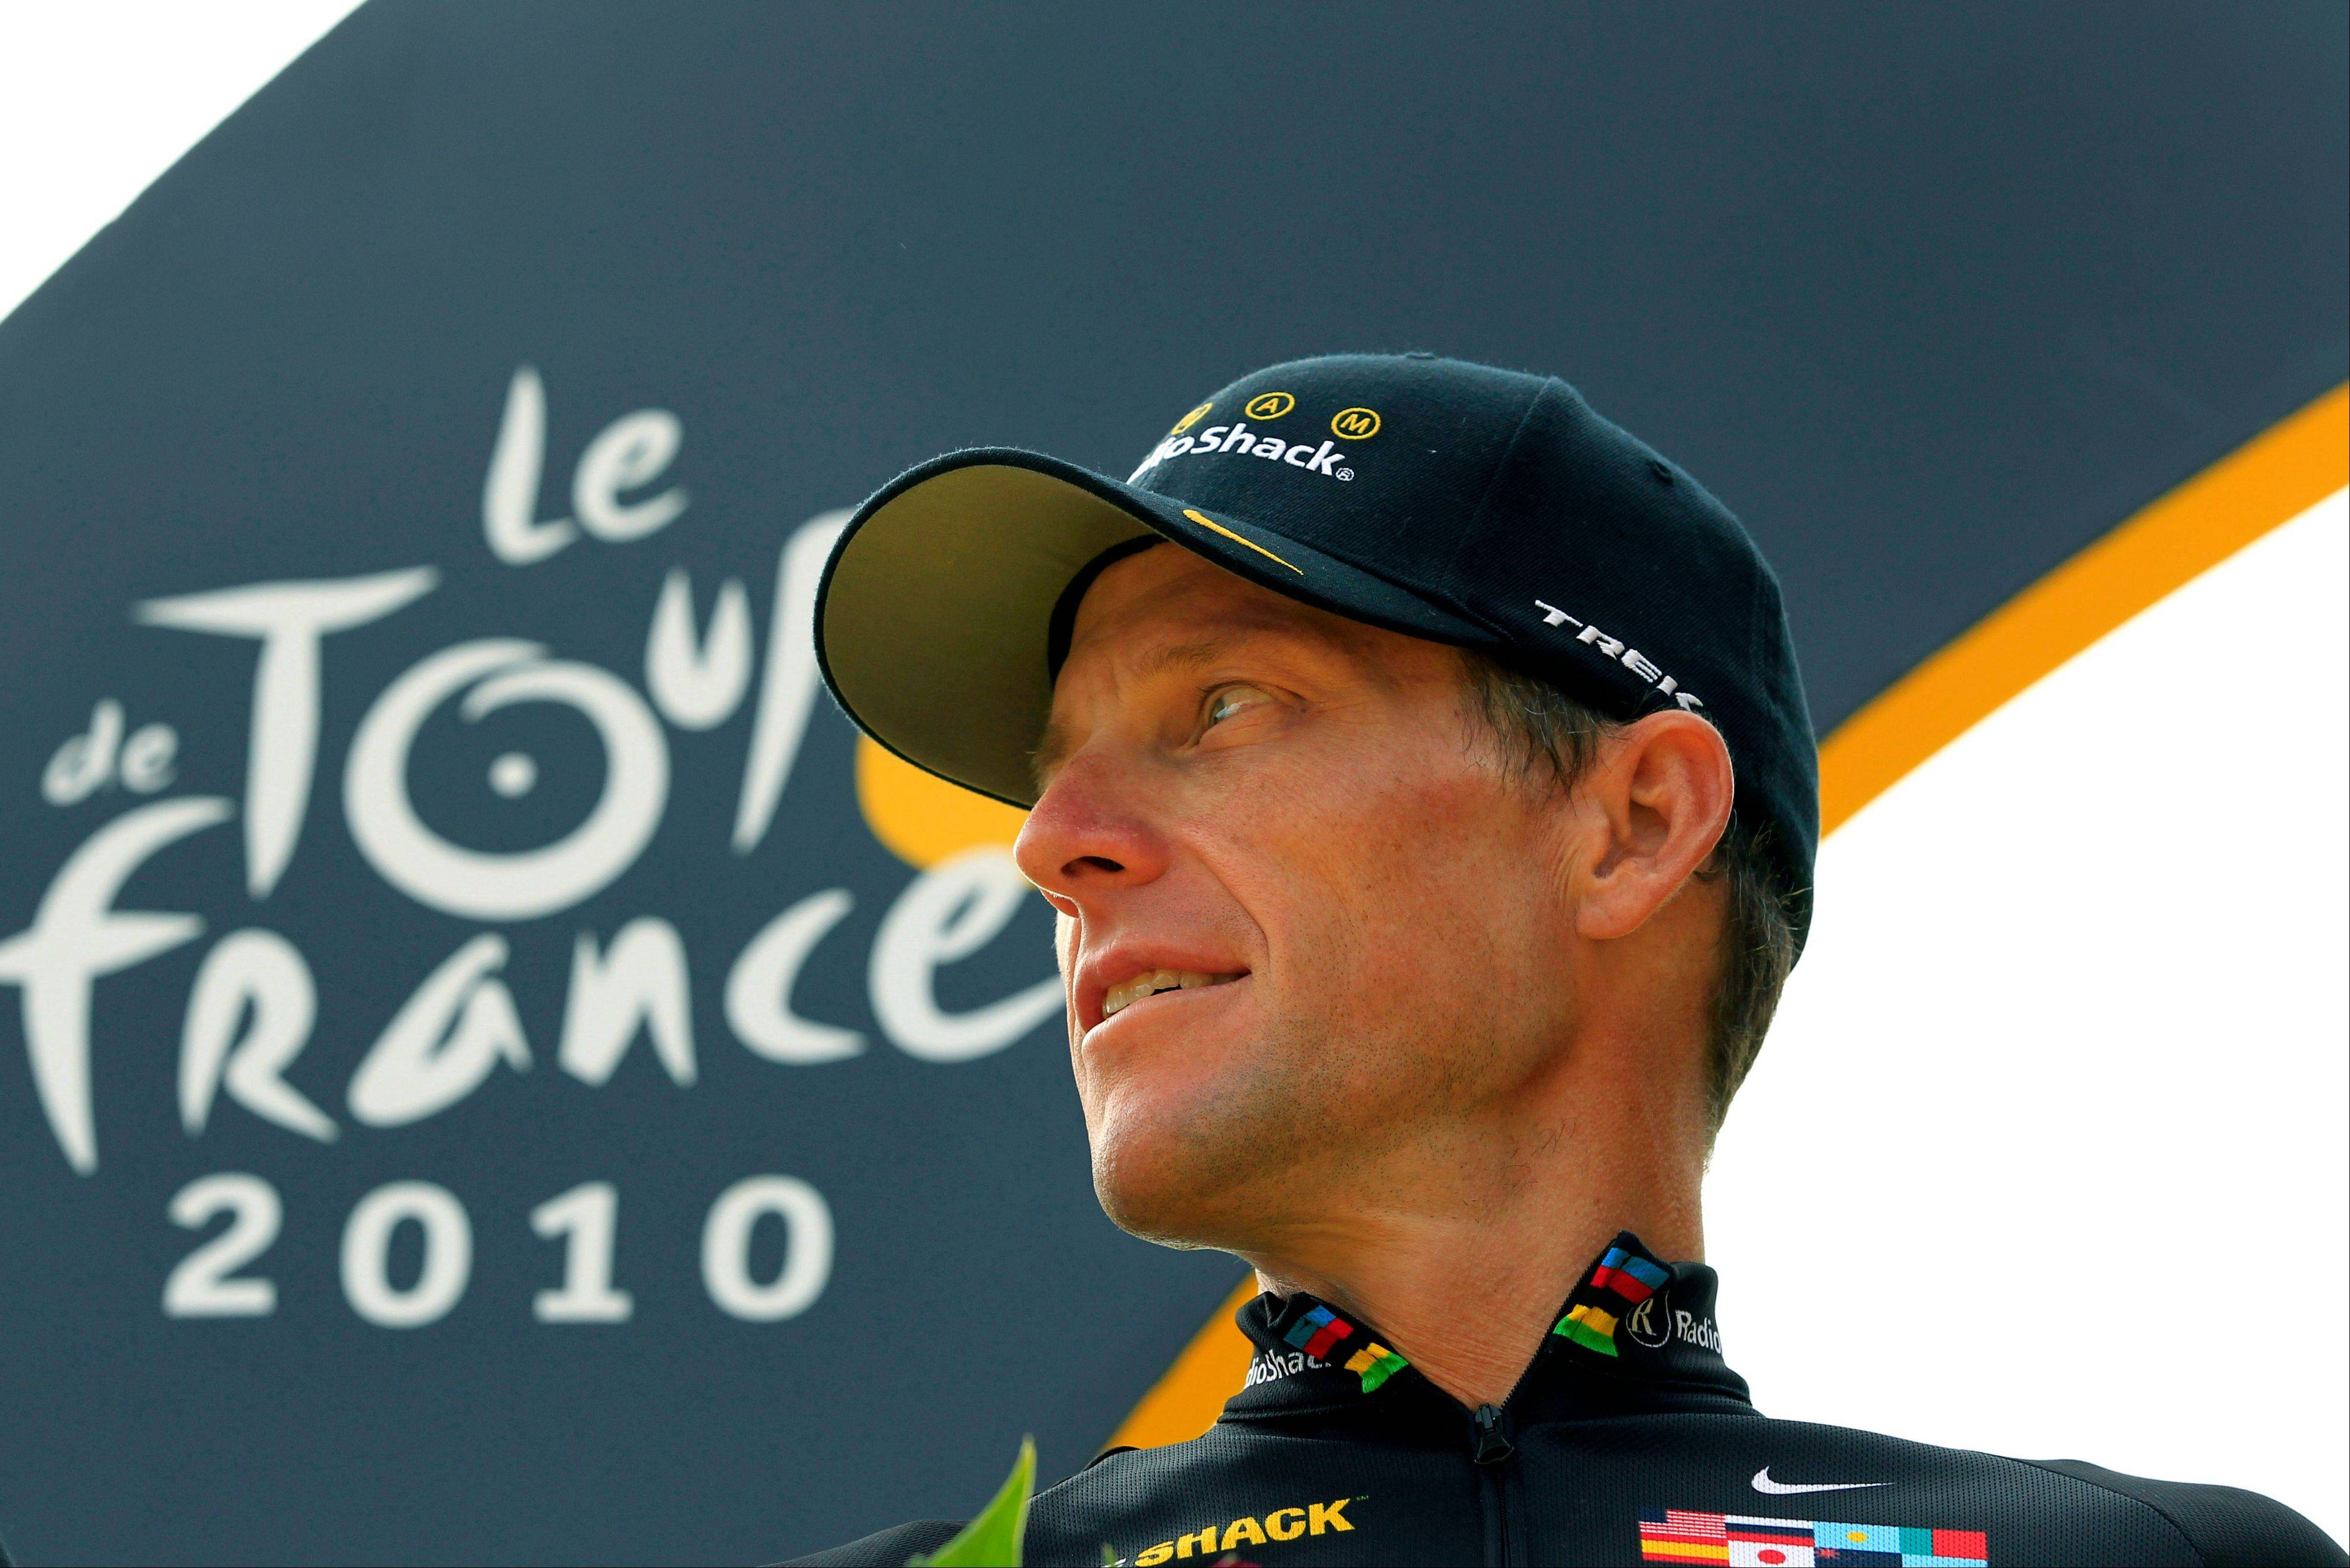 Lance Armstrong looks back on the podium after the final stage of the Tour de France in 2010. Armstrong confessed to using performance-enhancing drugs to win the Tour de France during a taped interview with Oprah Winfrey that aired Thursday.